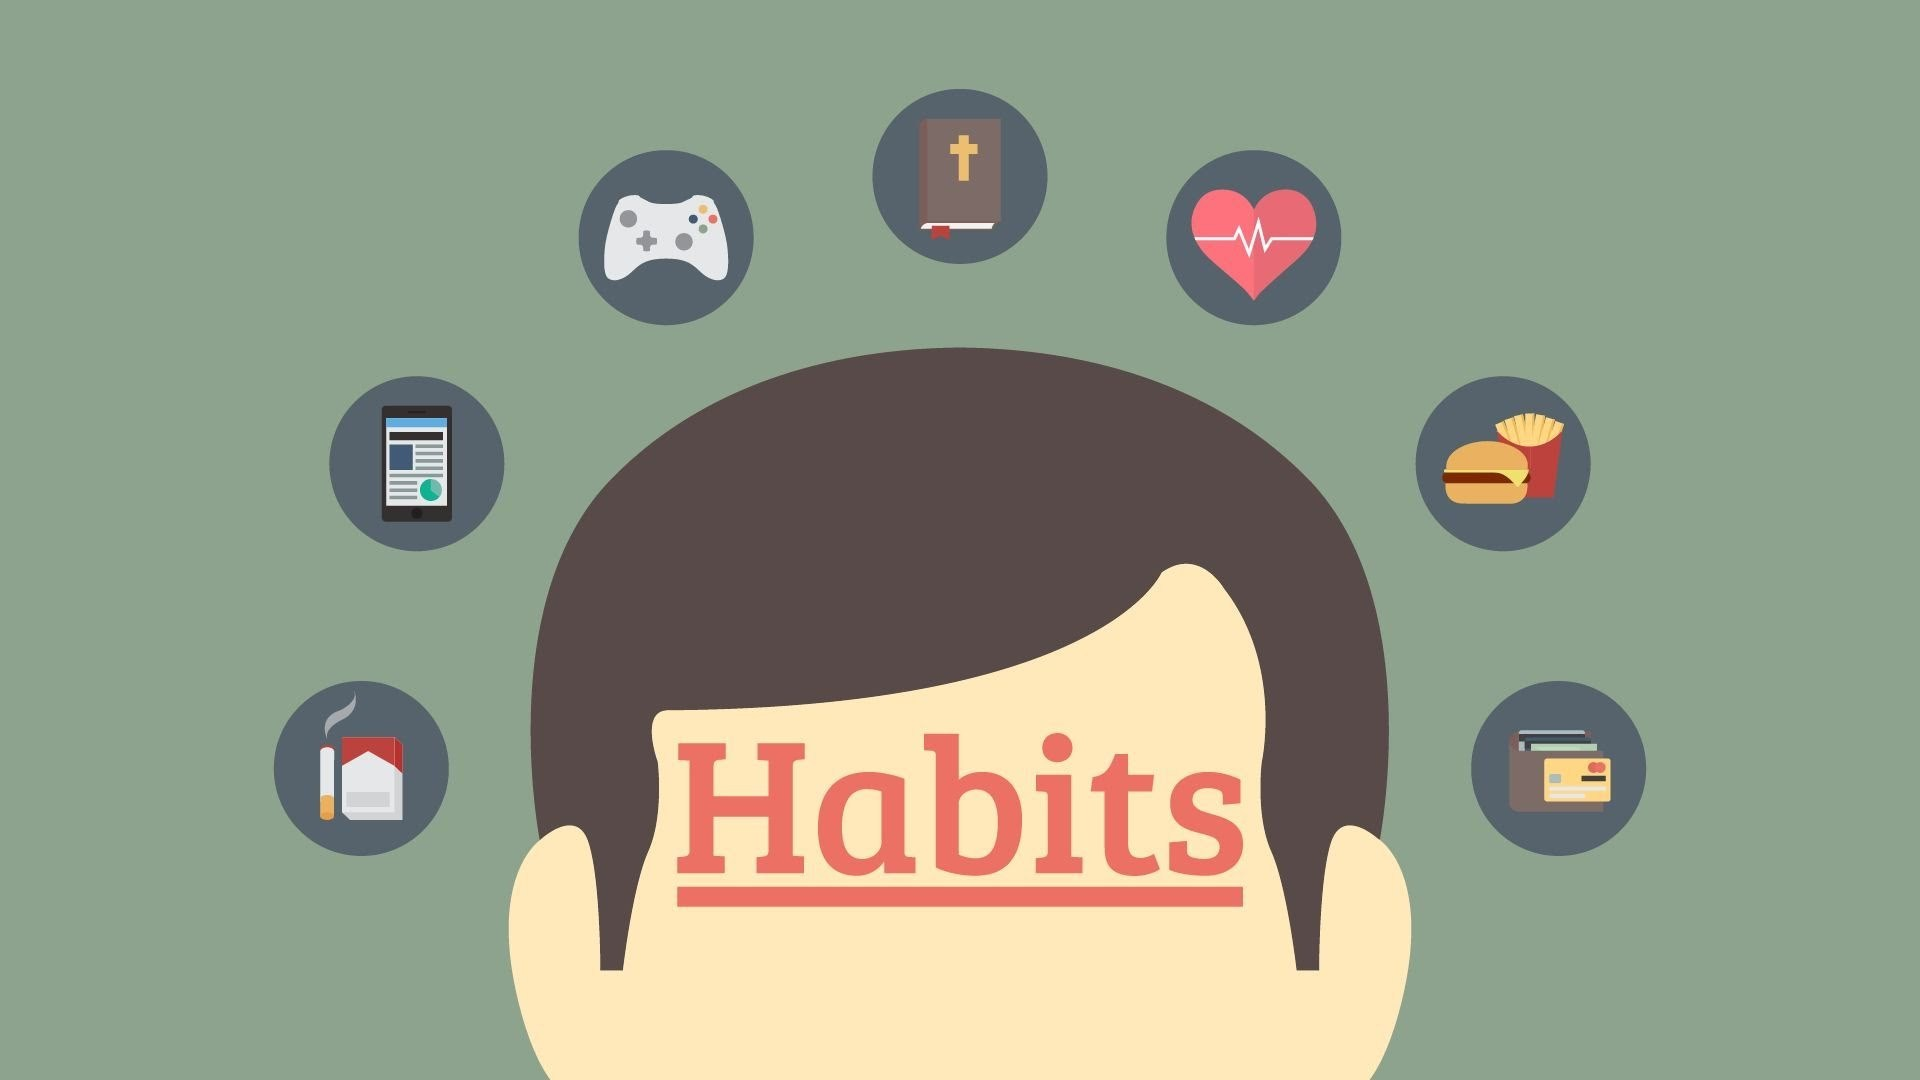 Habit loop: Trigger, Craving, Response, and Rewards